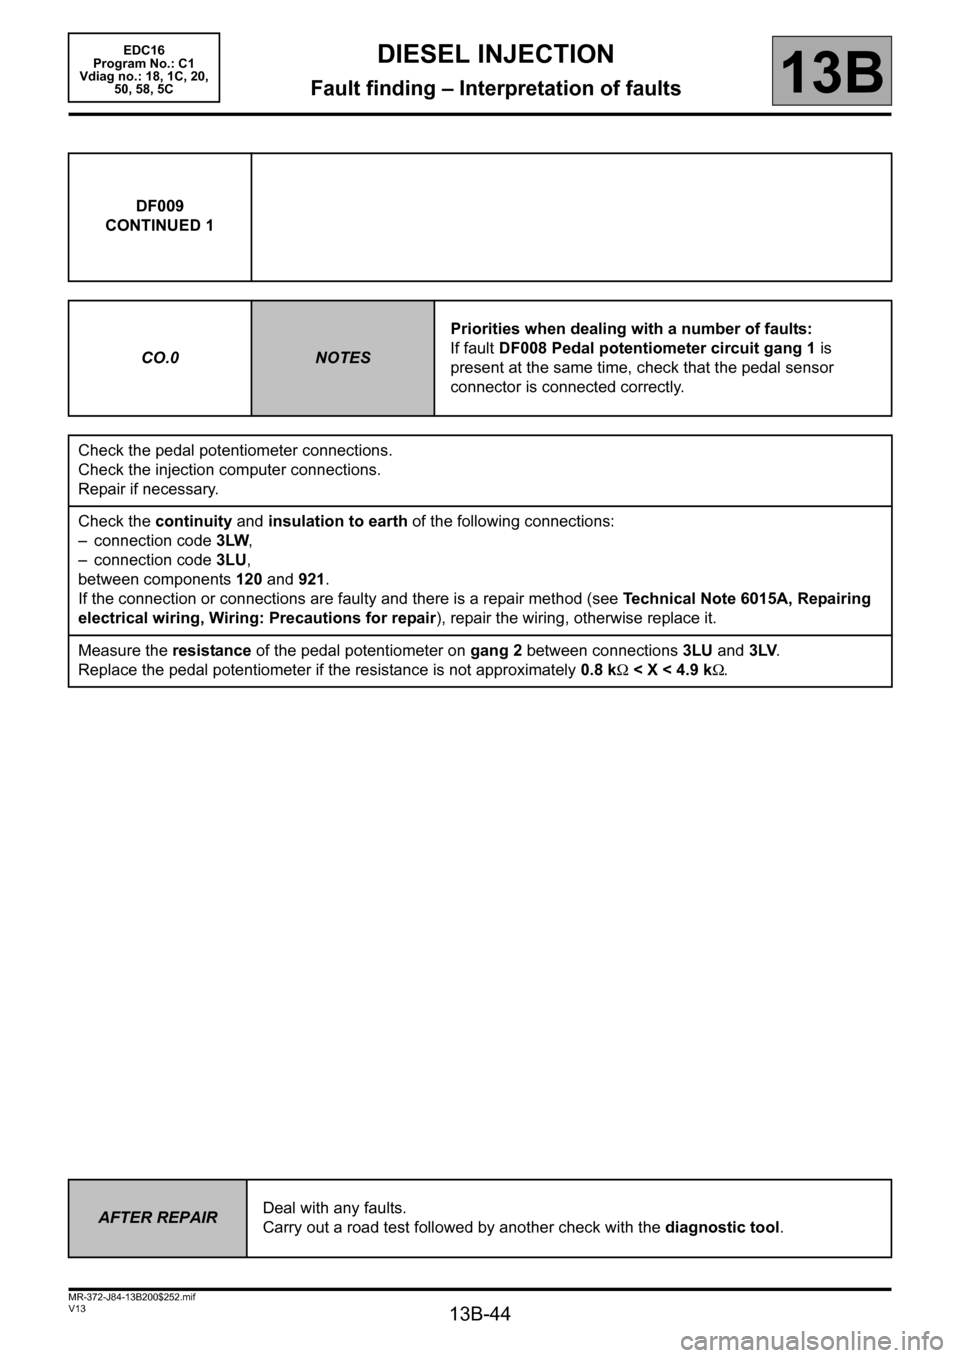 RENAULT SCENIC 2011 J95 / 3.G Engine And Peripherals EDC16 Workshop Manual, Page 44